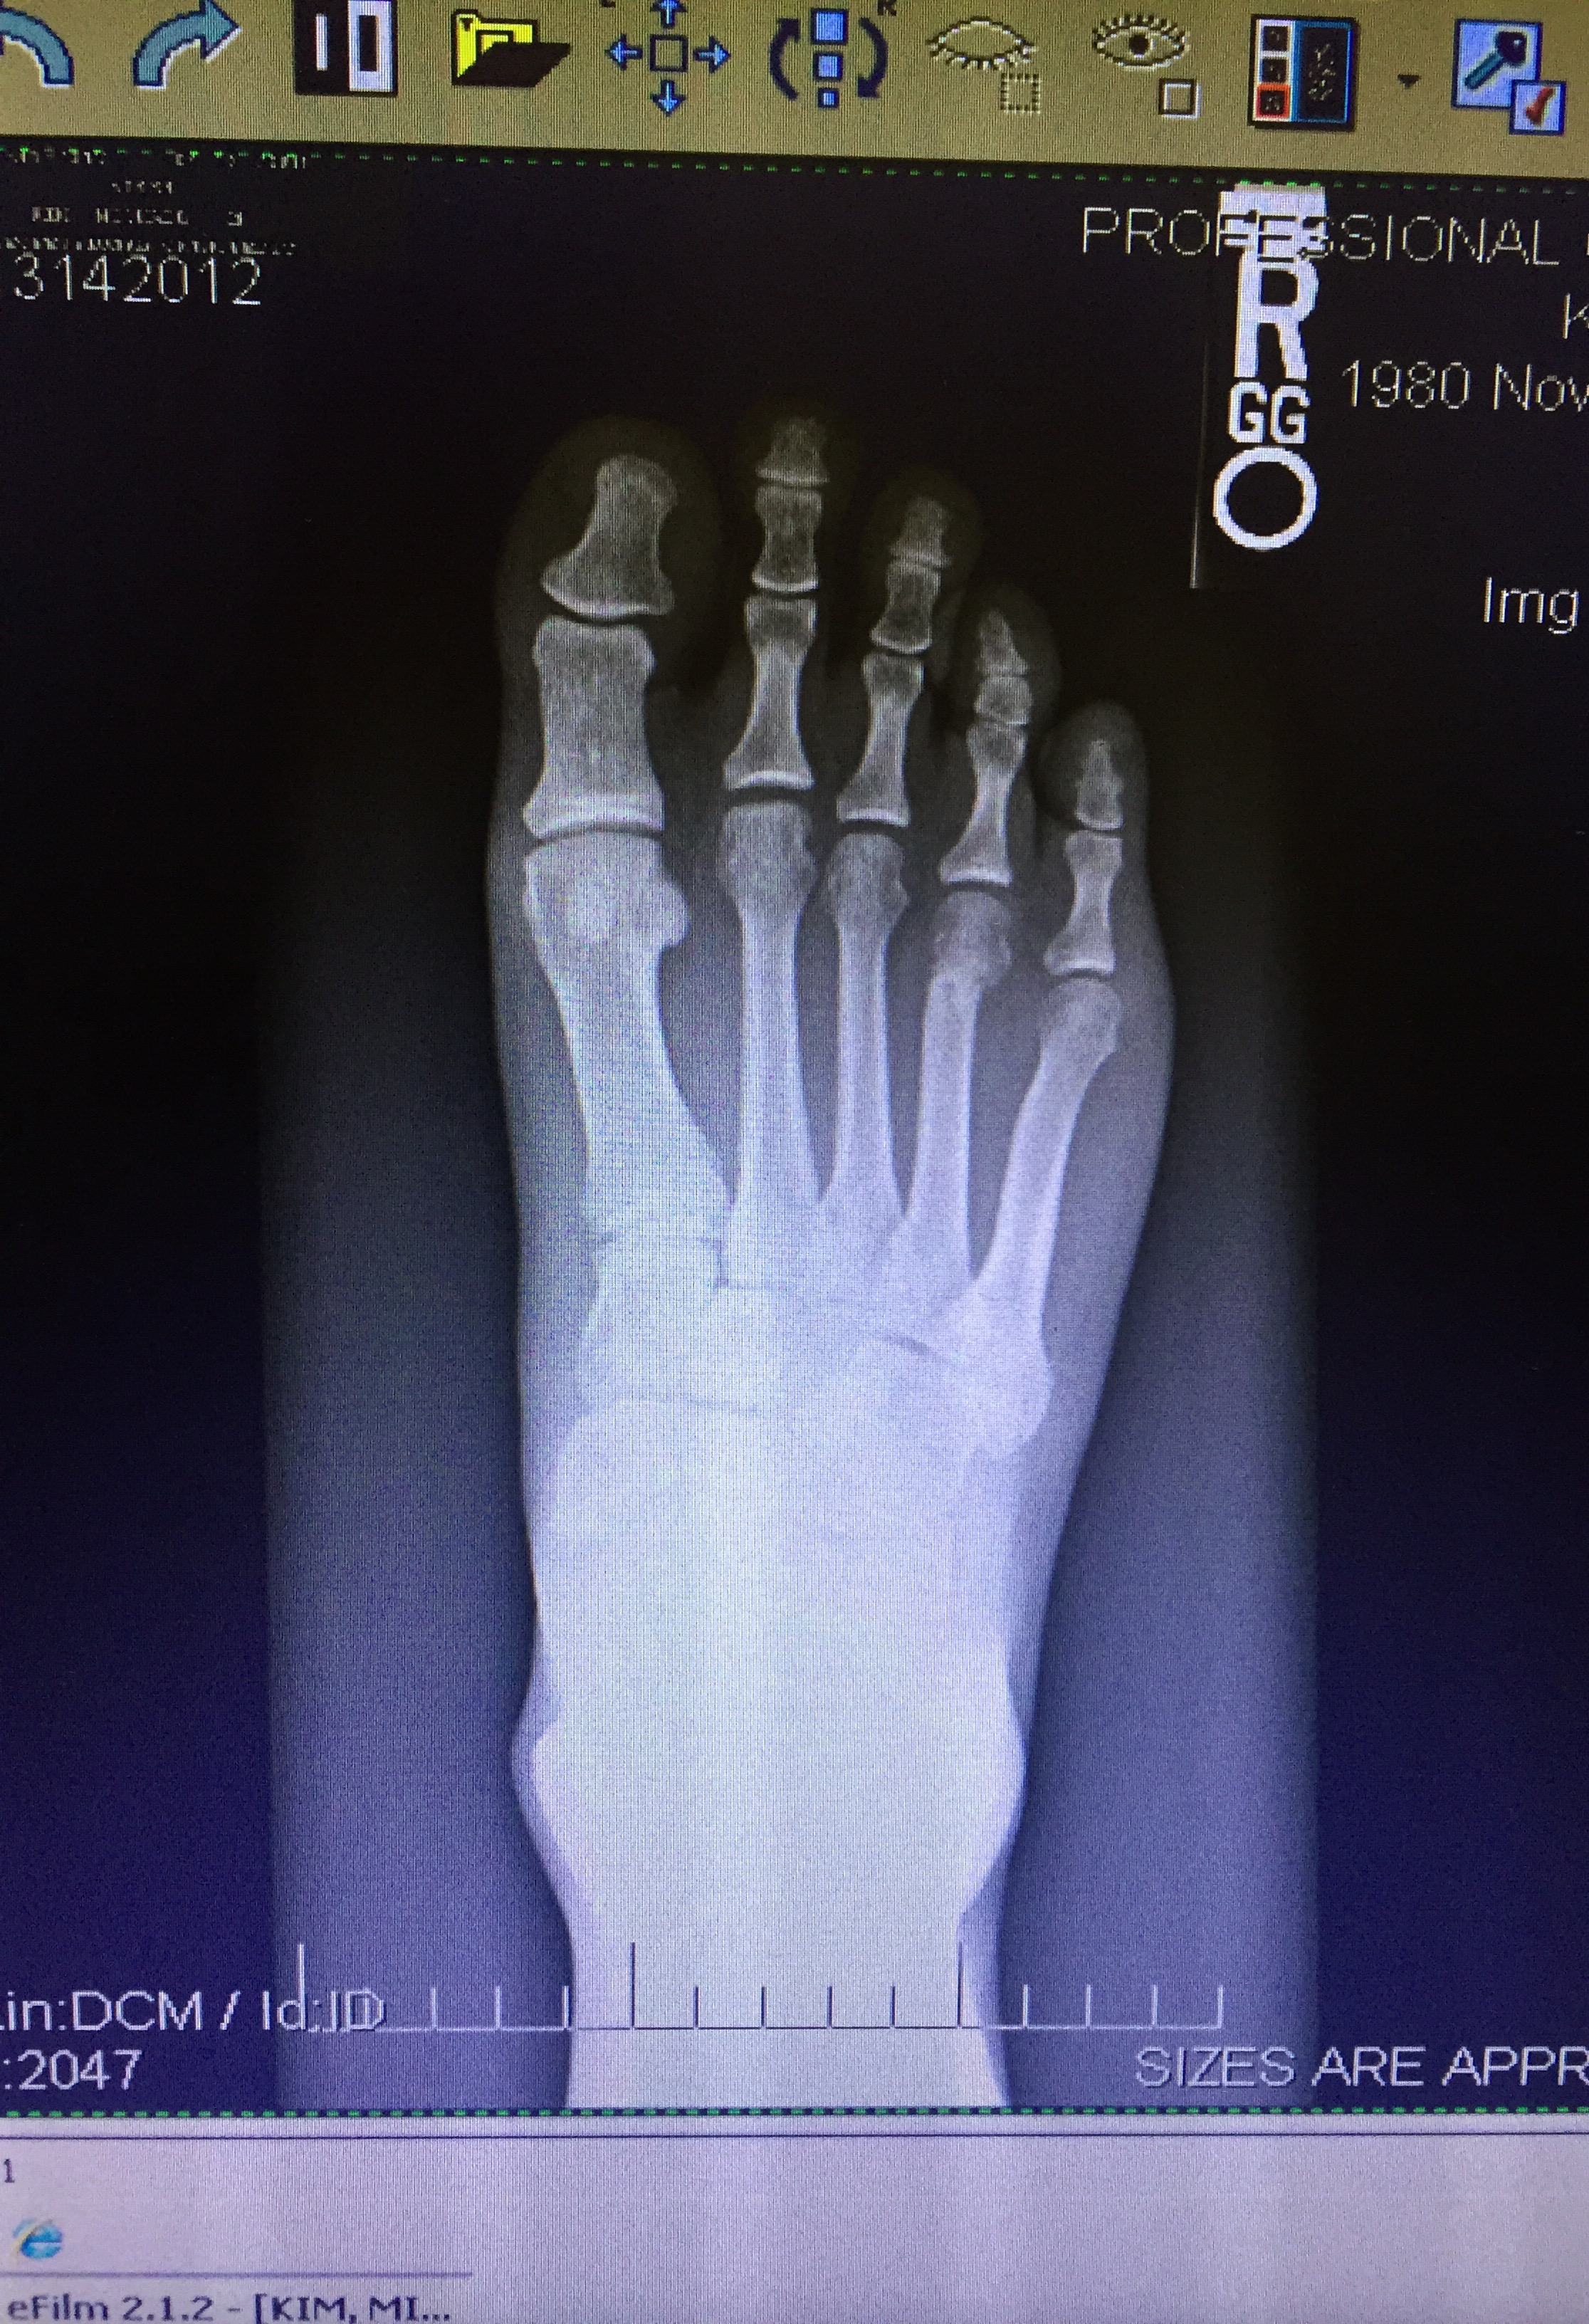 (x rays showed a slight fracture on the 4th metatarsal)